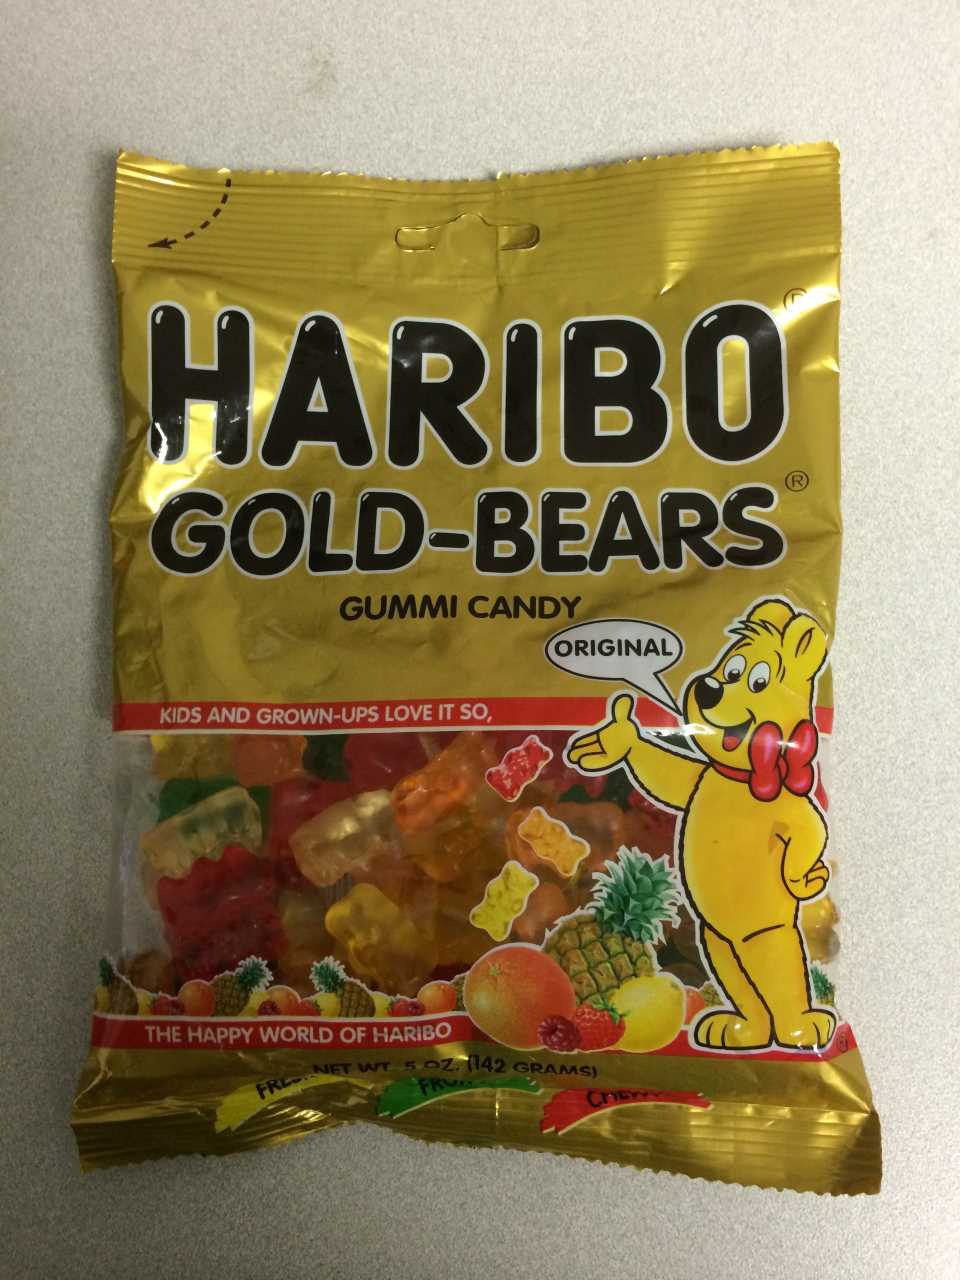 US Haribo Gold Bears